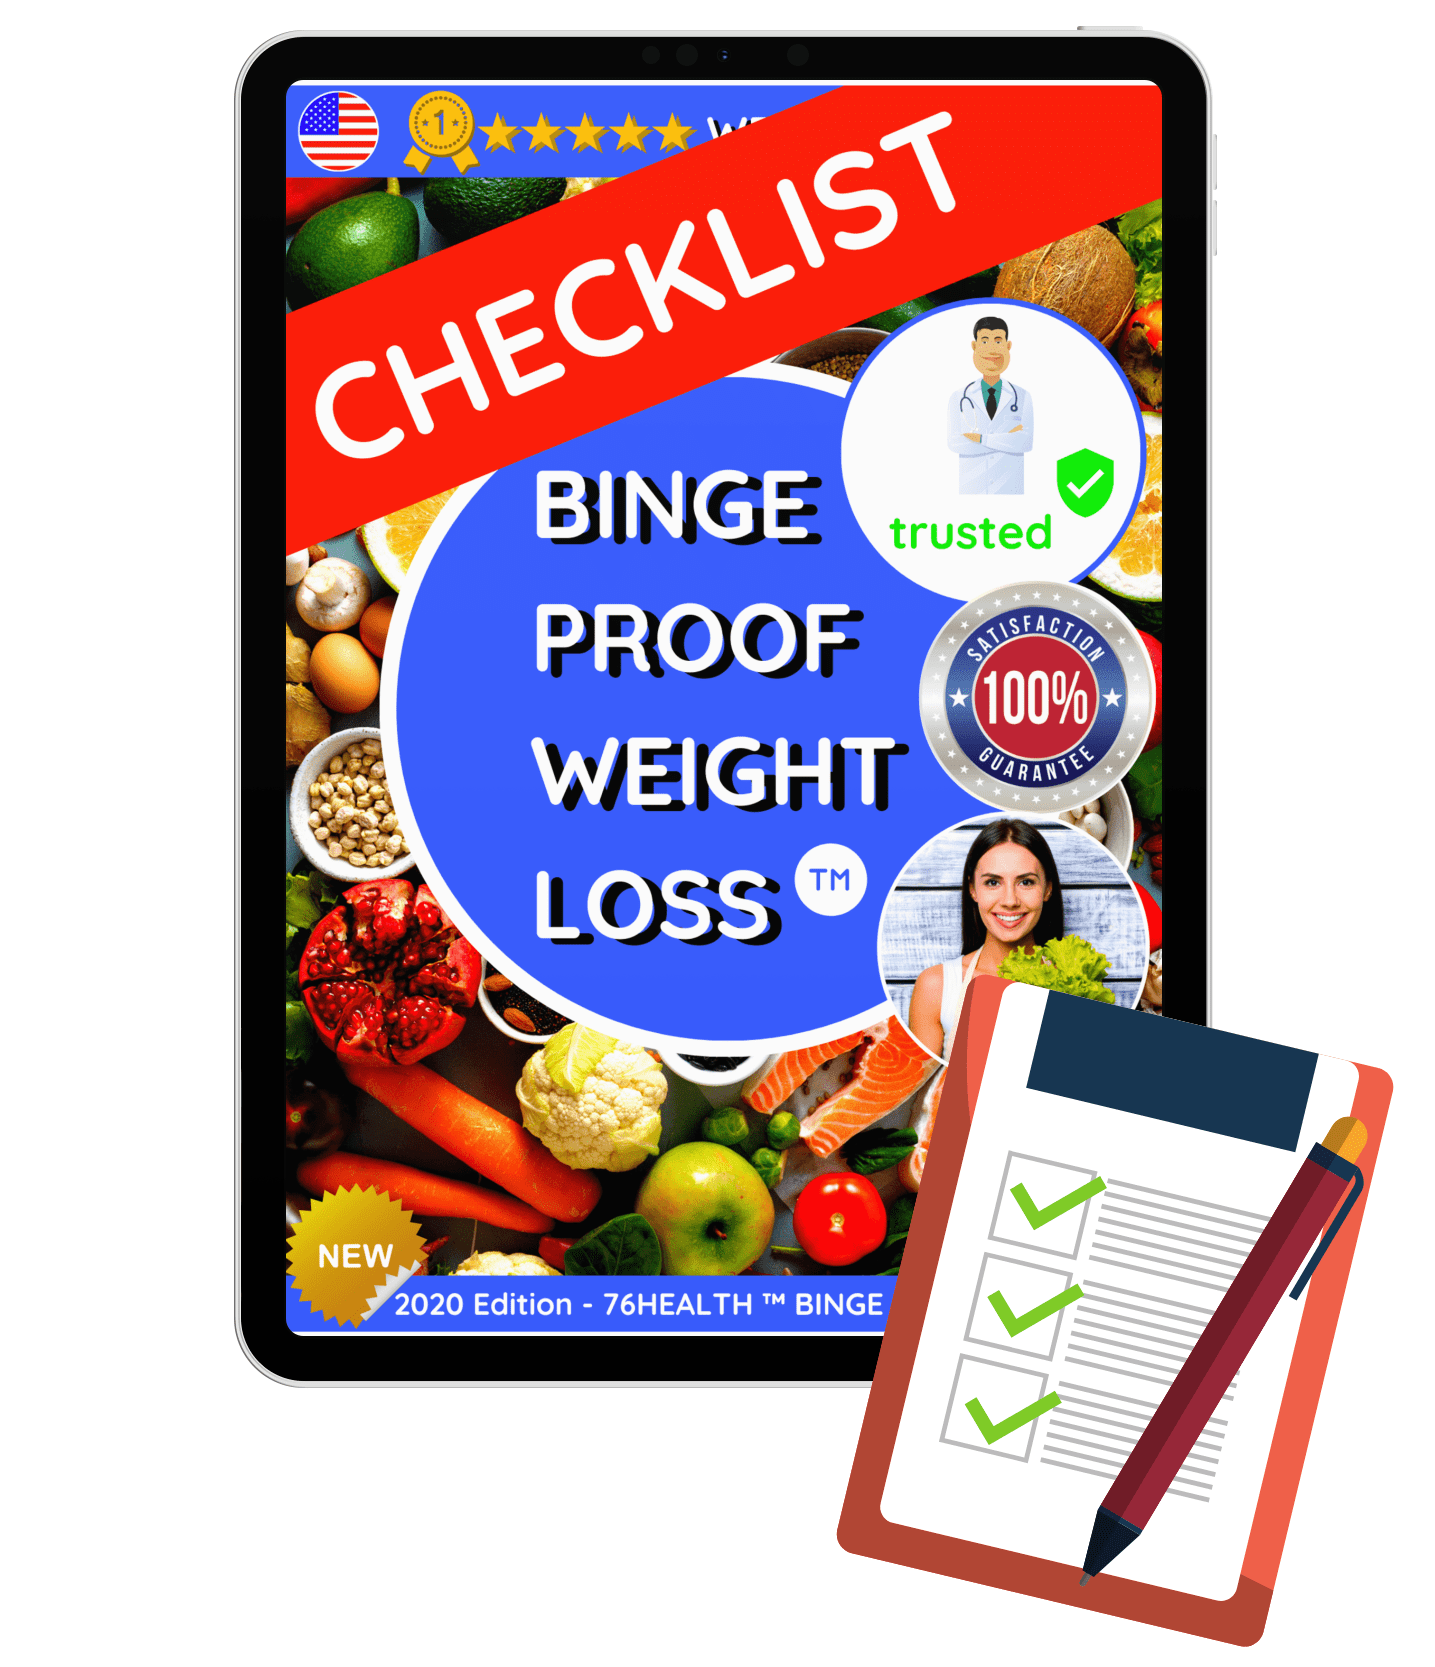 76HEALTH™ BINGE PROOF WEIGHT LOSS GUIDE – Edition 2020